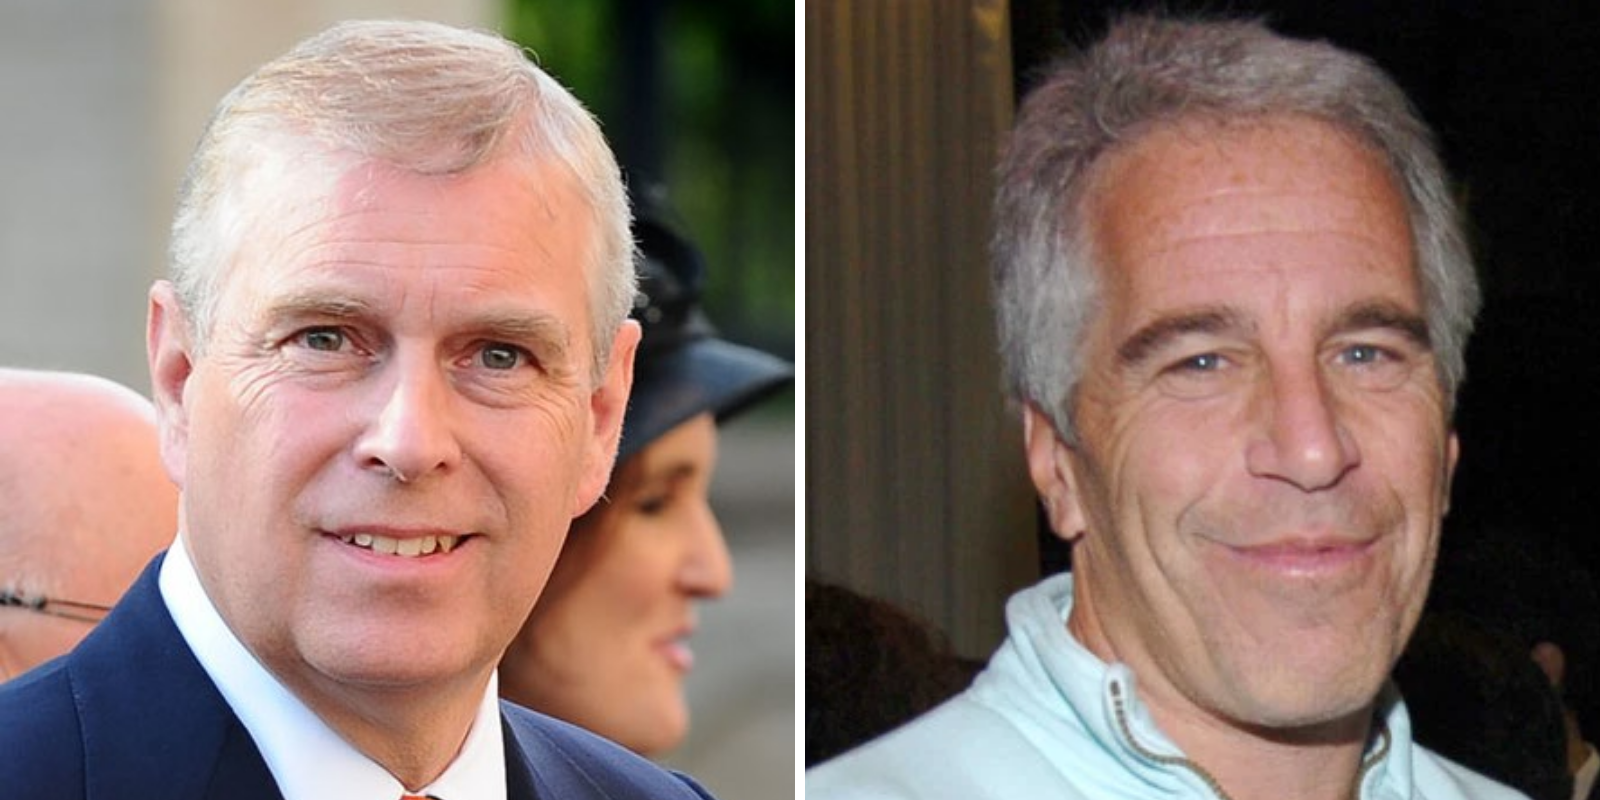 Federal prosecutors want to interview Prince Andrew over Epstein scandal